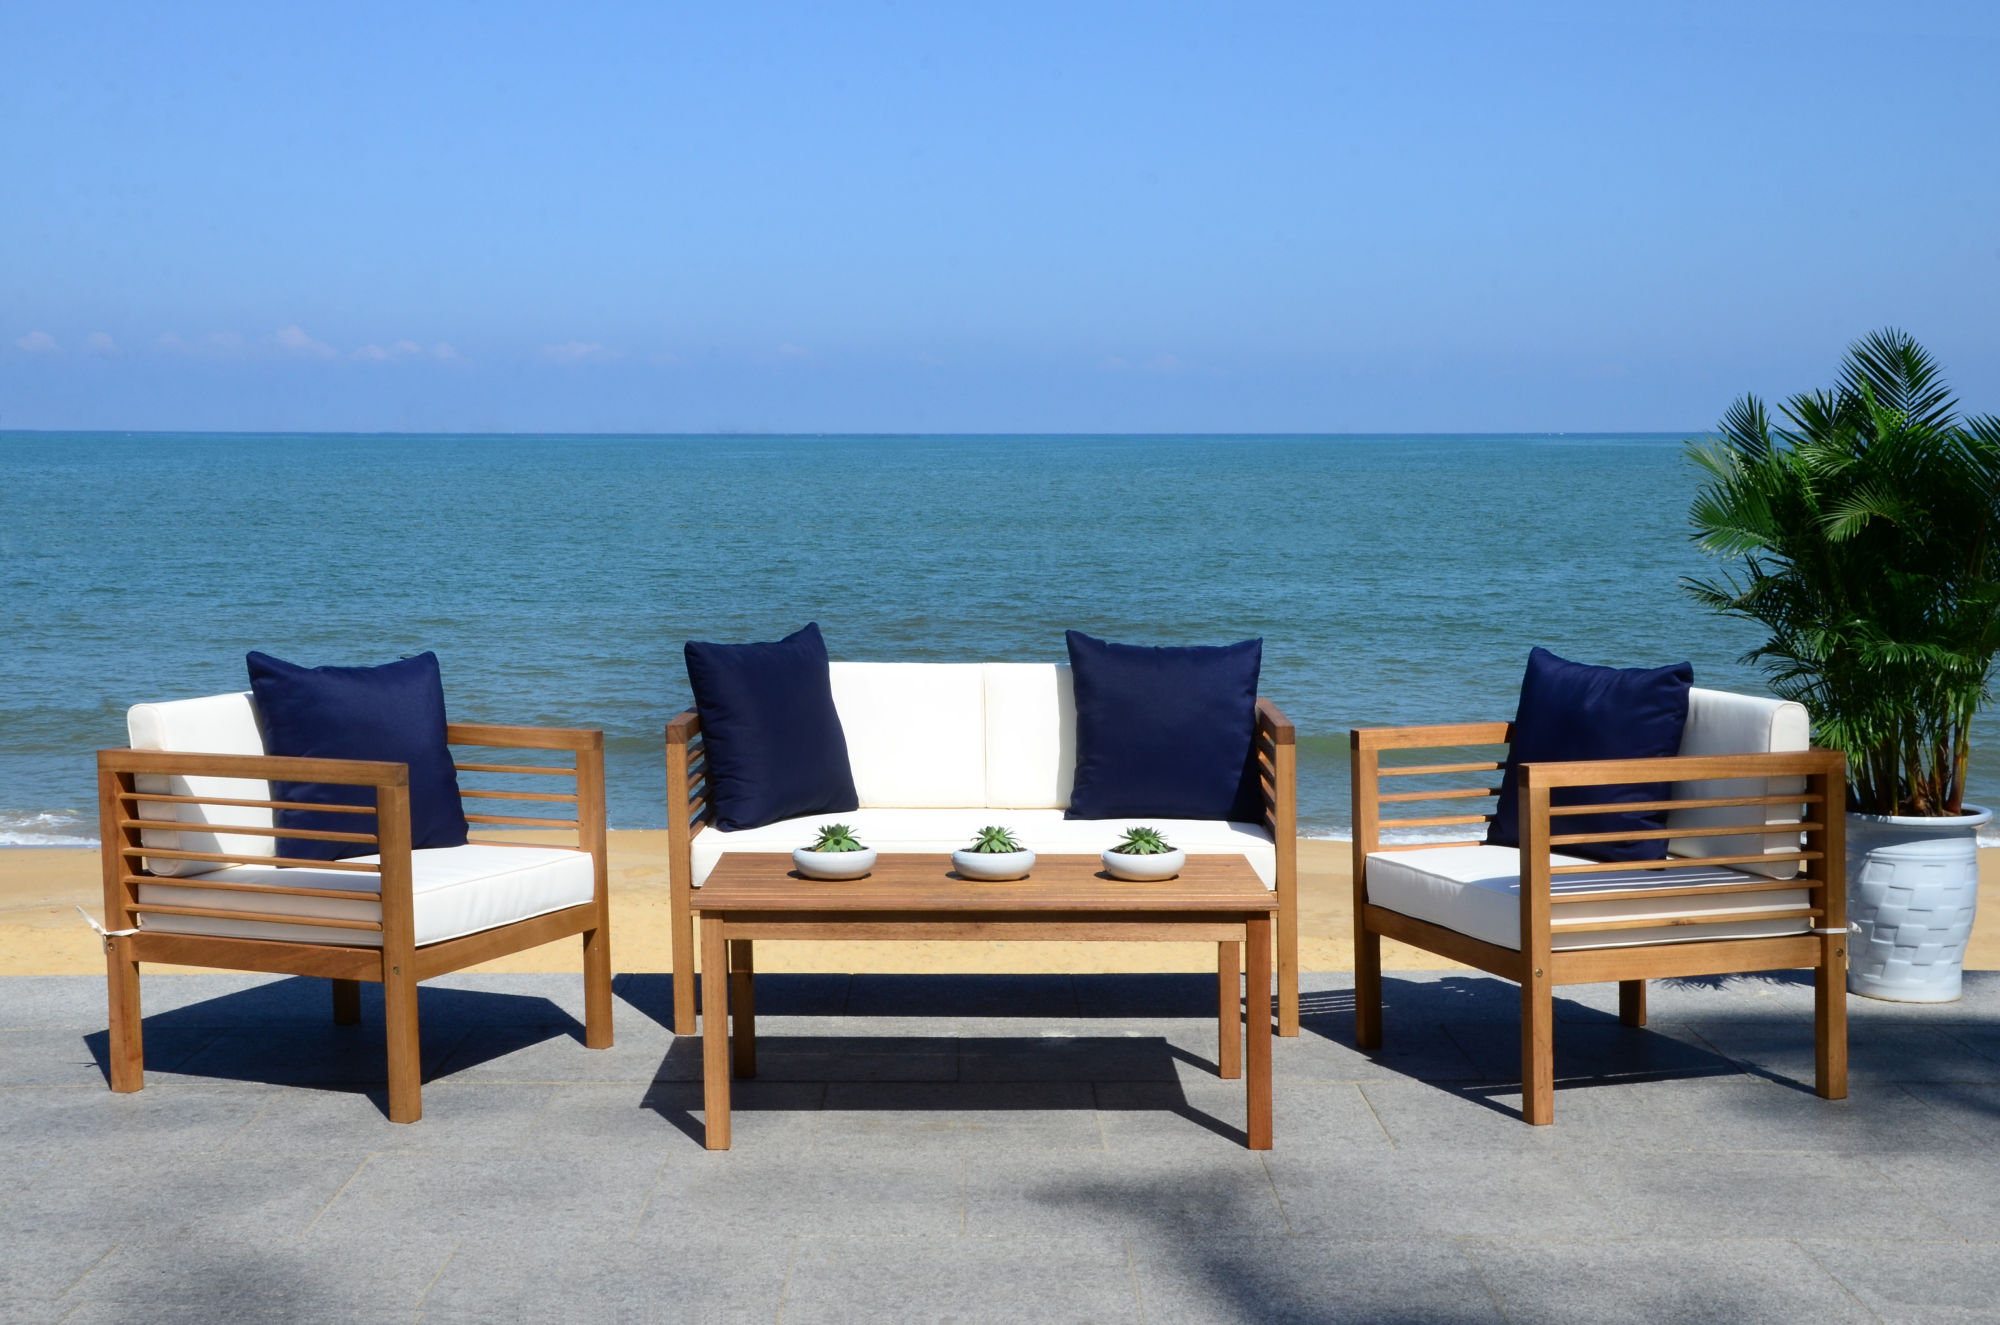 Alda 4 Pc Outdoor Set With Accent Pillows on Safavieh Alda 4Pc Outdoor Set id=69178